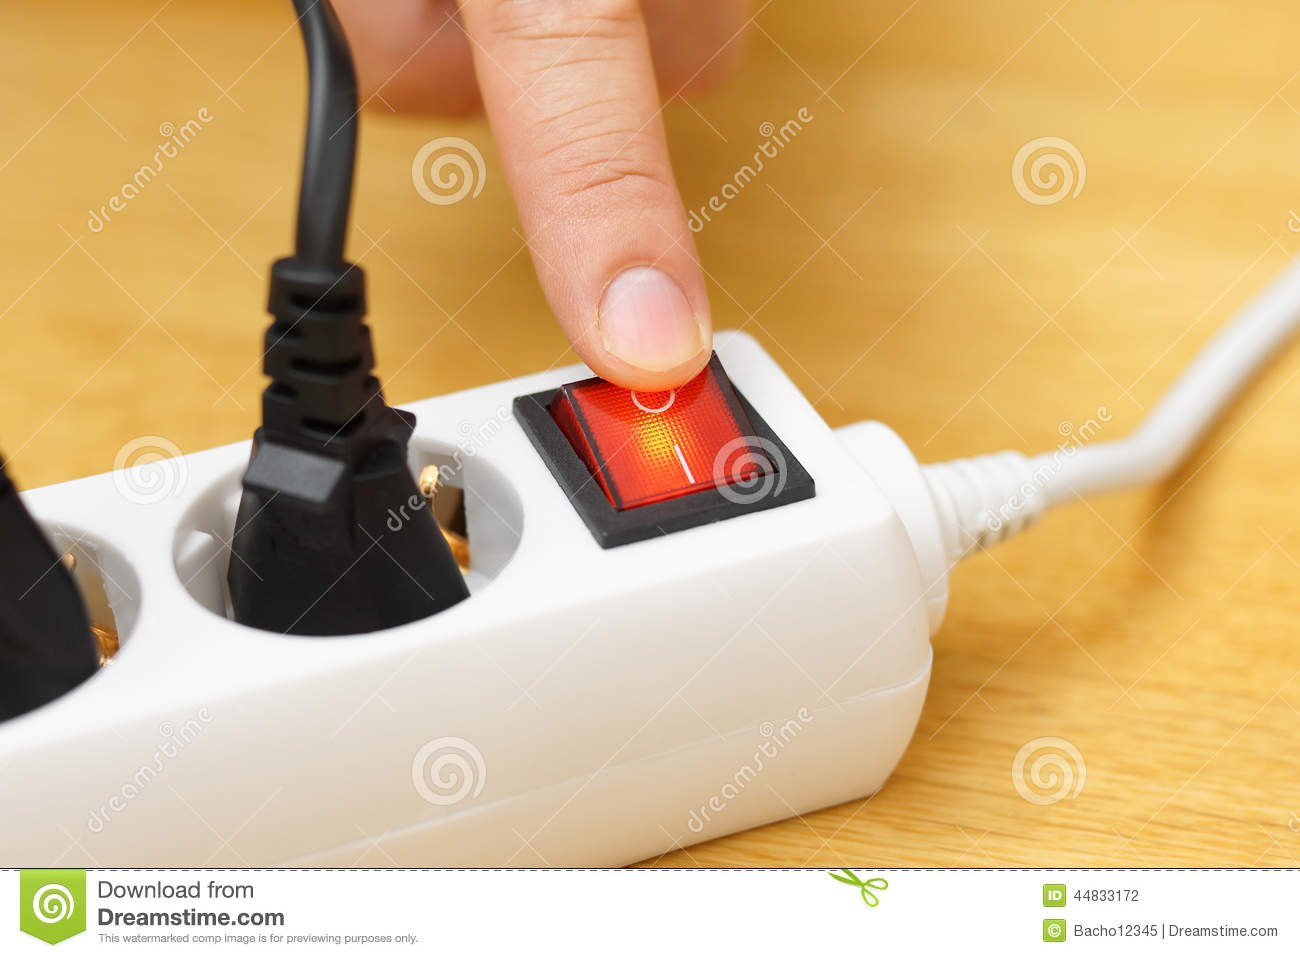 21 332 Save Electricity Photos Free Royalty Free Stock Photos From Dreamstime